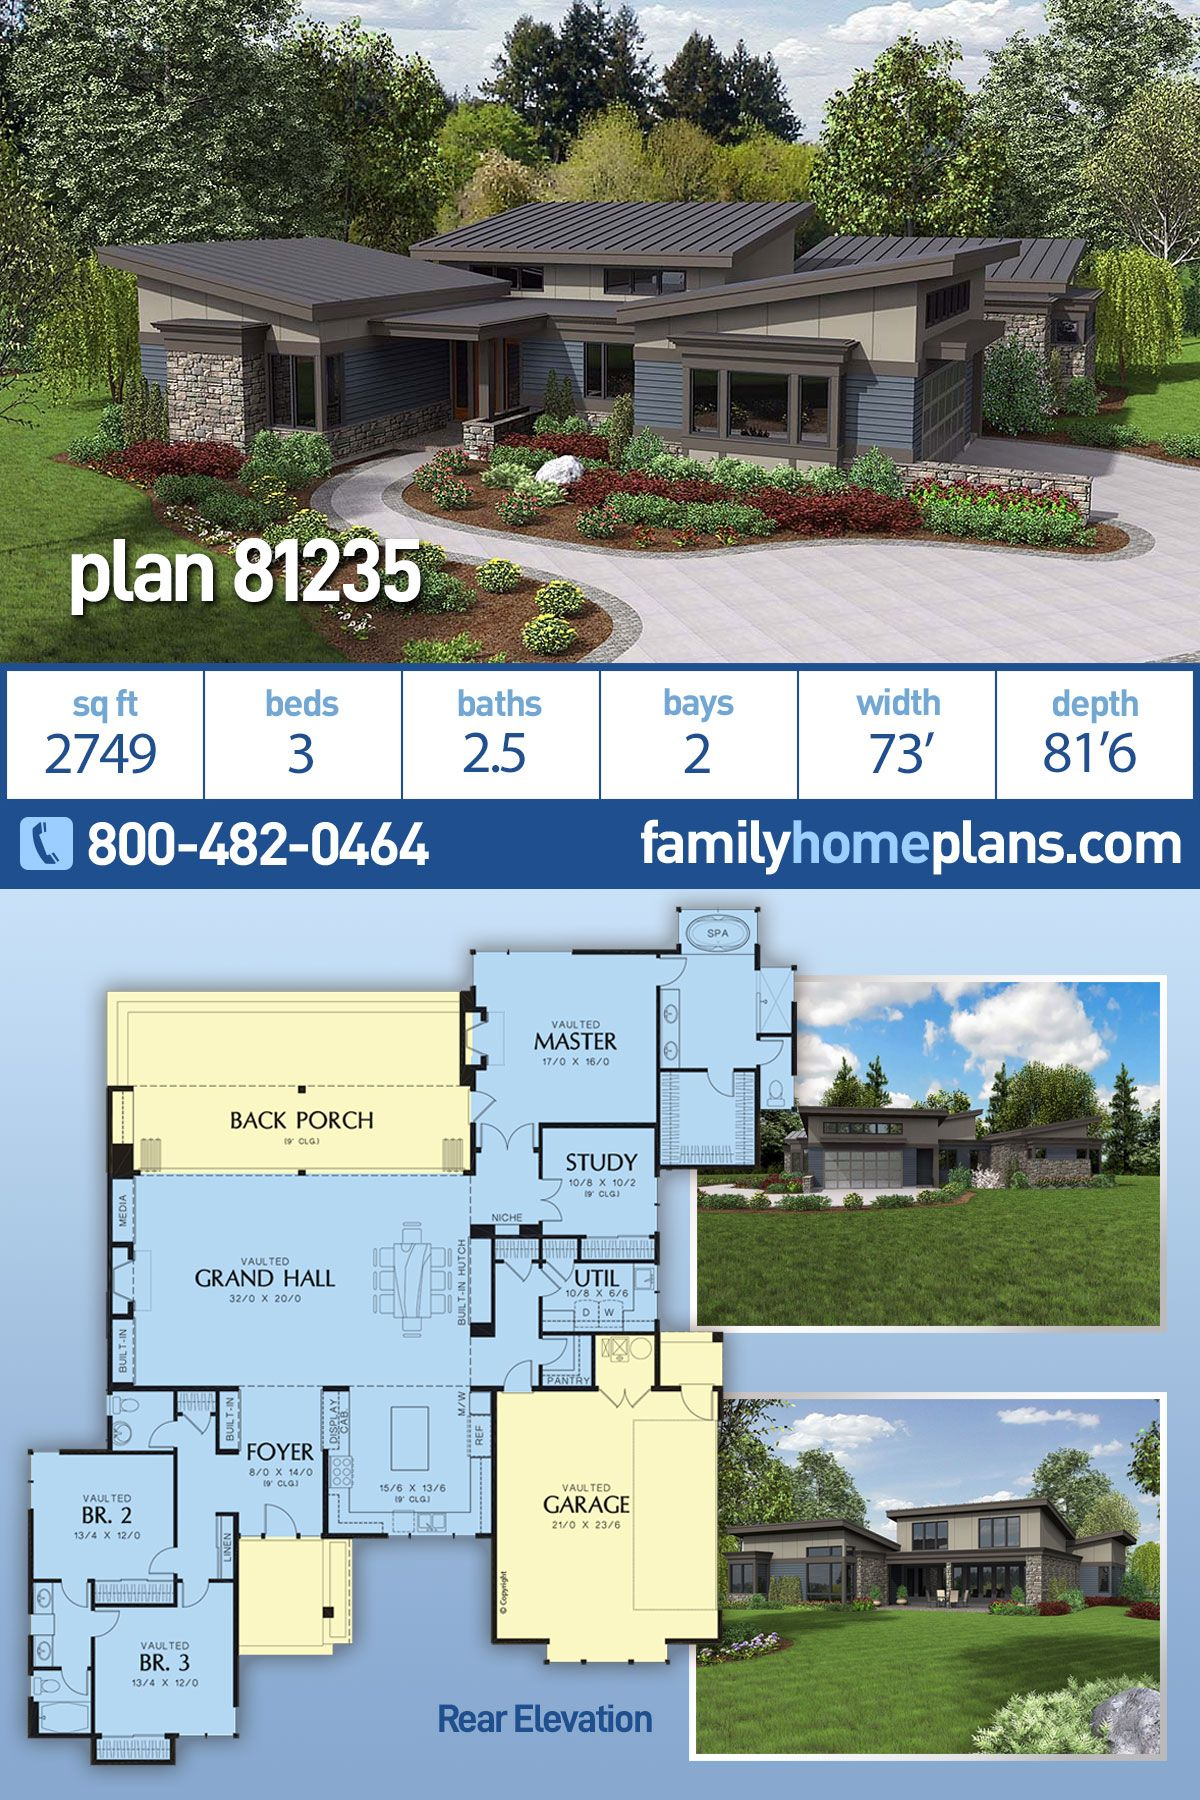 Modern Style House Plan 81235 With 3 Bed 3 Bath 2 Car Garage Modern Style House Plans House Plans Garage House Plans